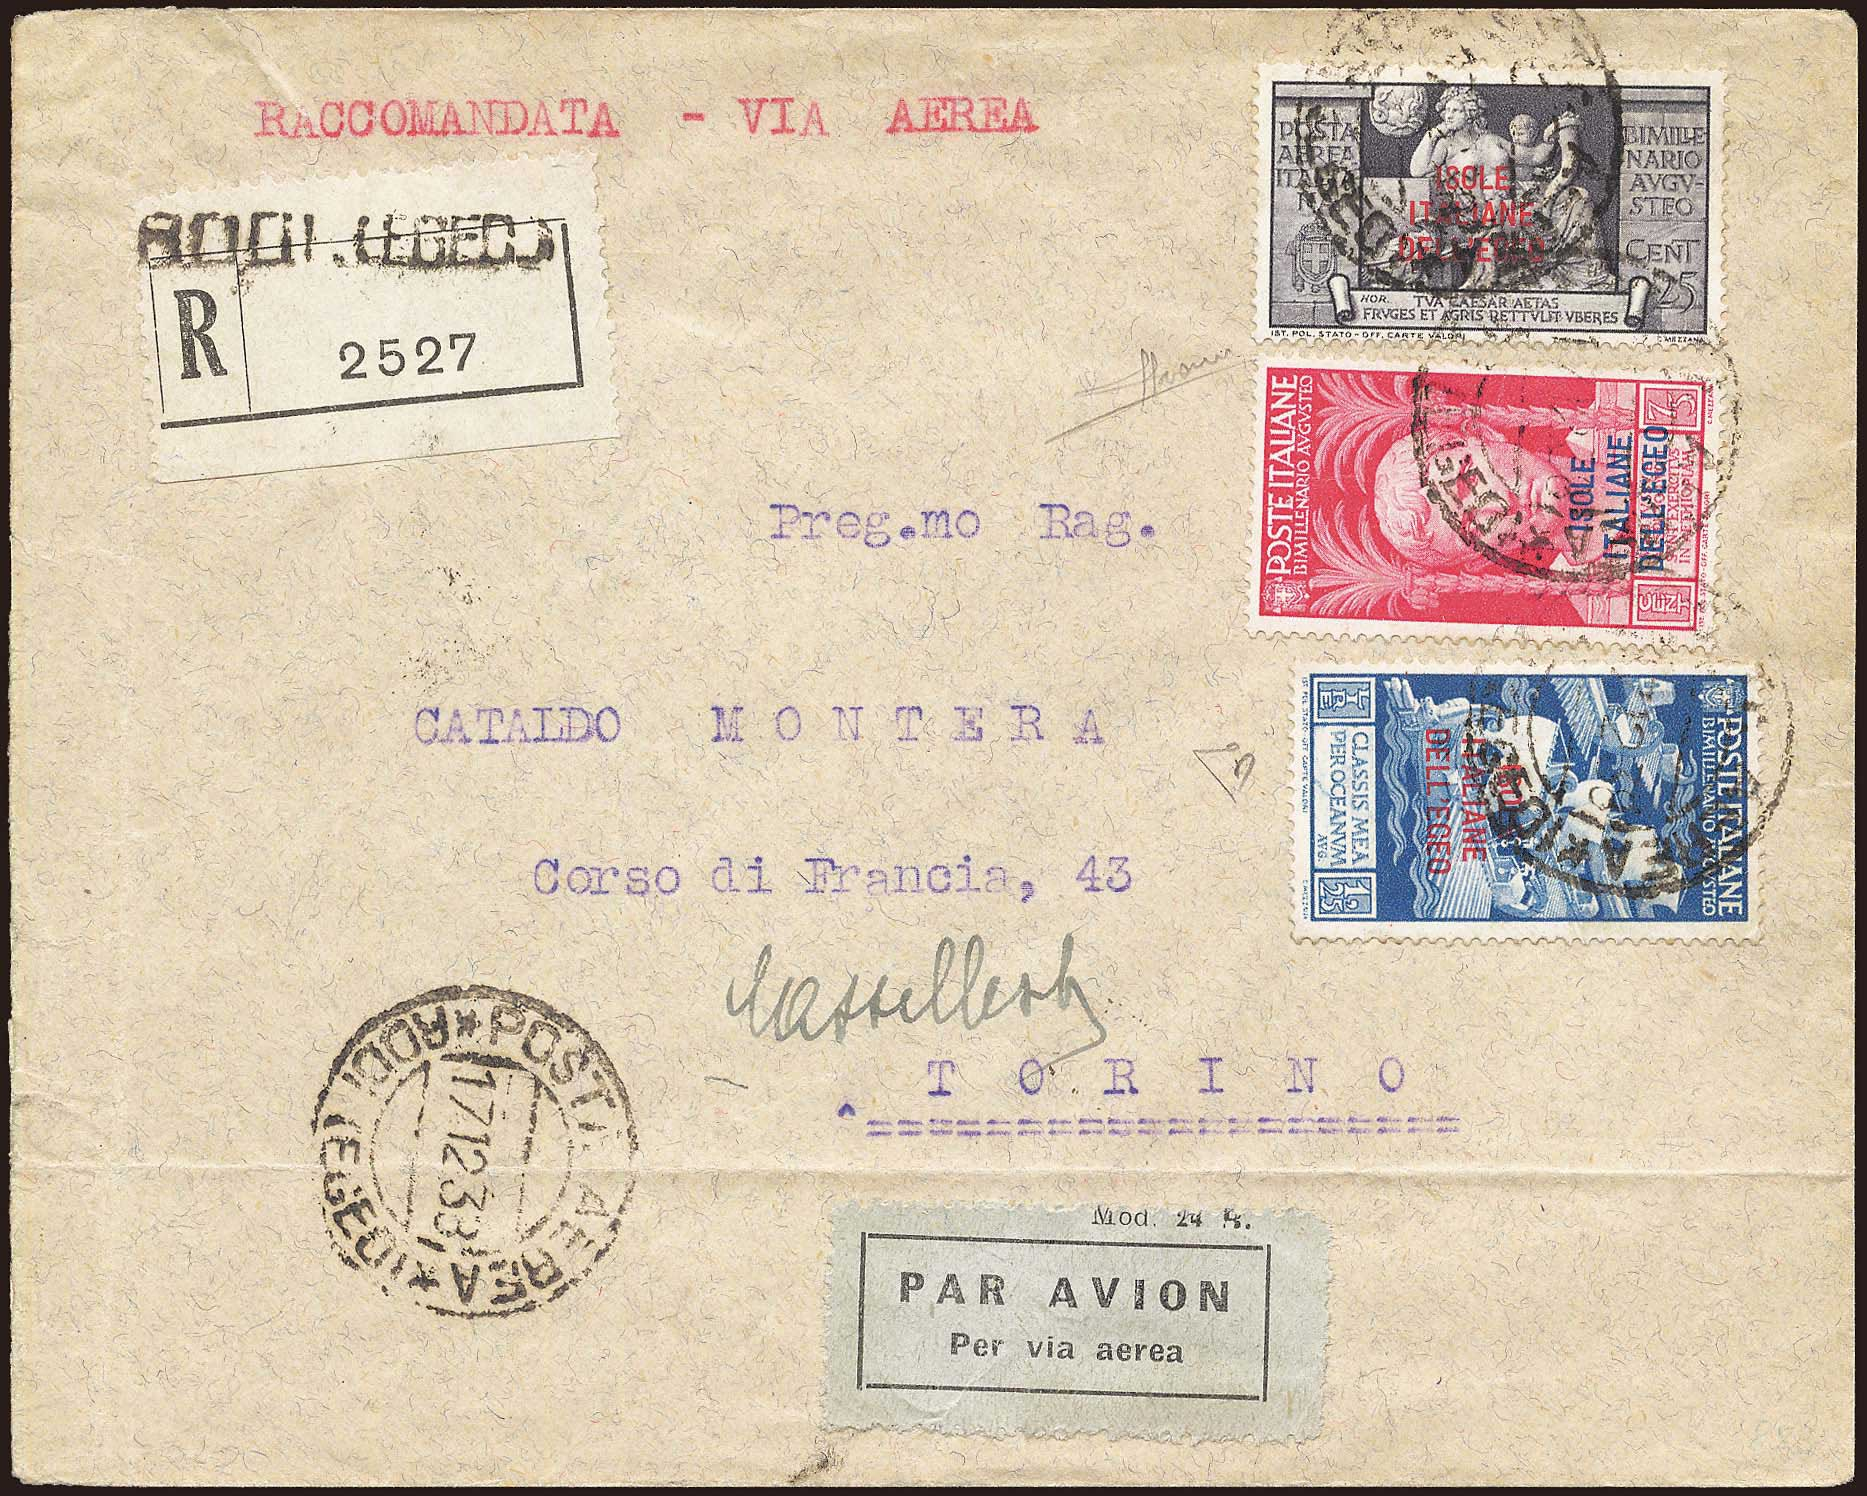 Lot 663 - Dodecanese italian dodecanese - italian post office issues -  A. Karamitsos Postal & Live Internet Auction 680 General Philatelic Auction